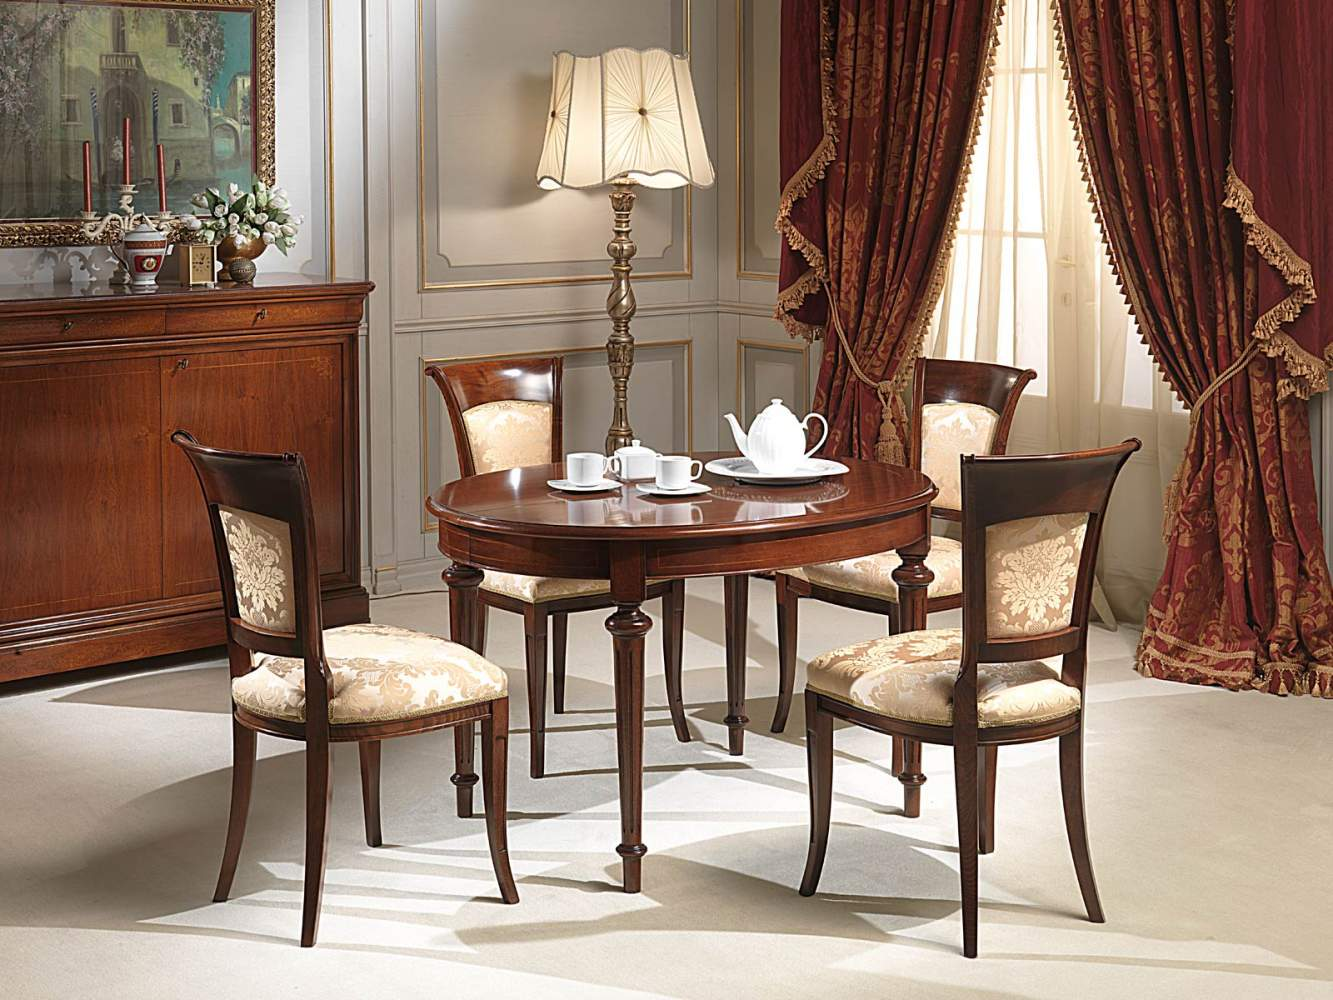 Oval extendable table